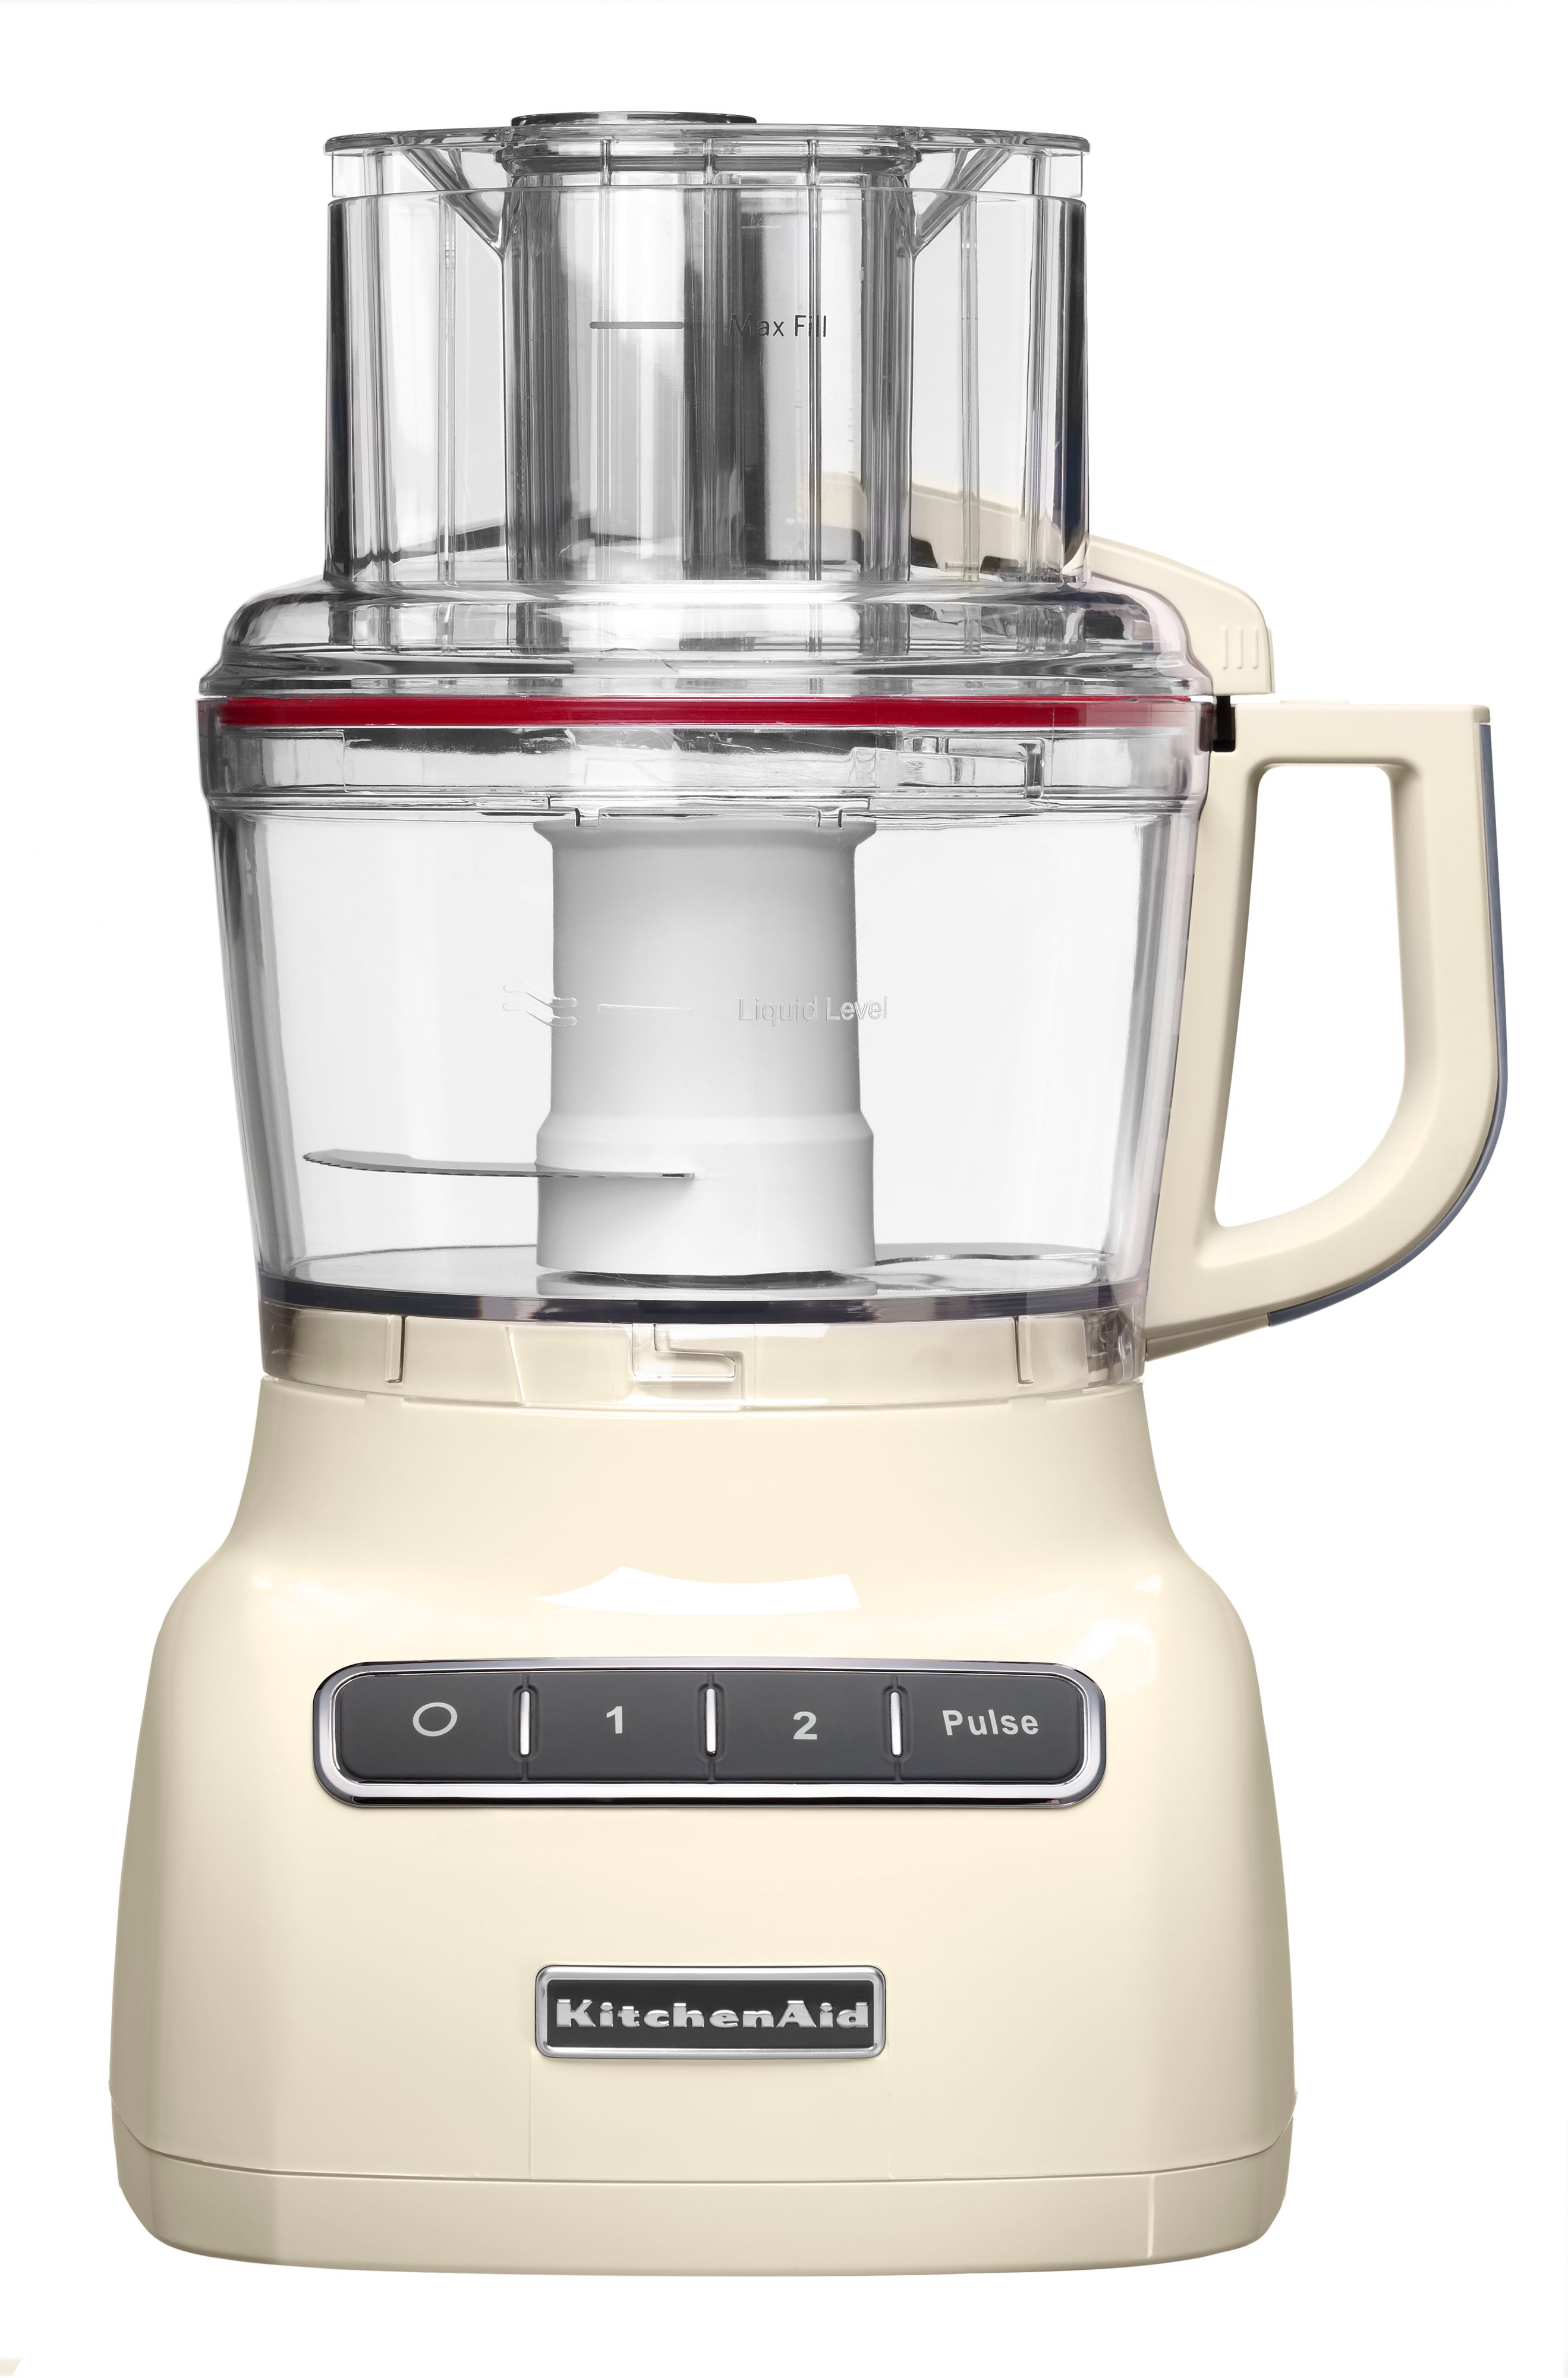 2.1L Kitchenaid almond cream food processor